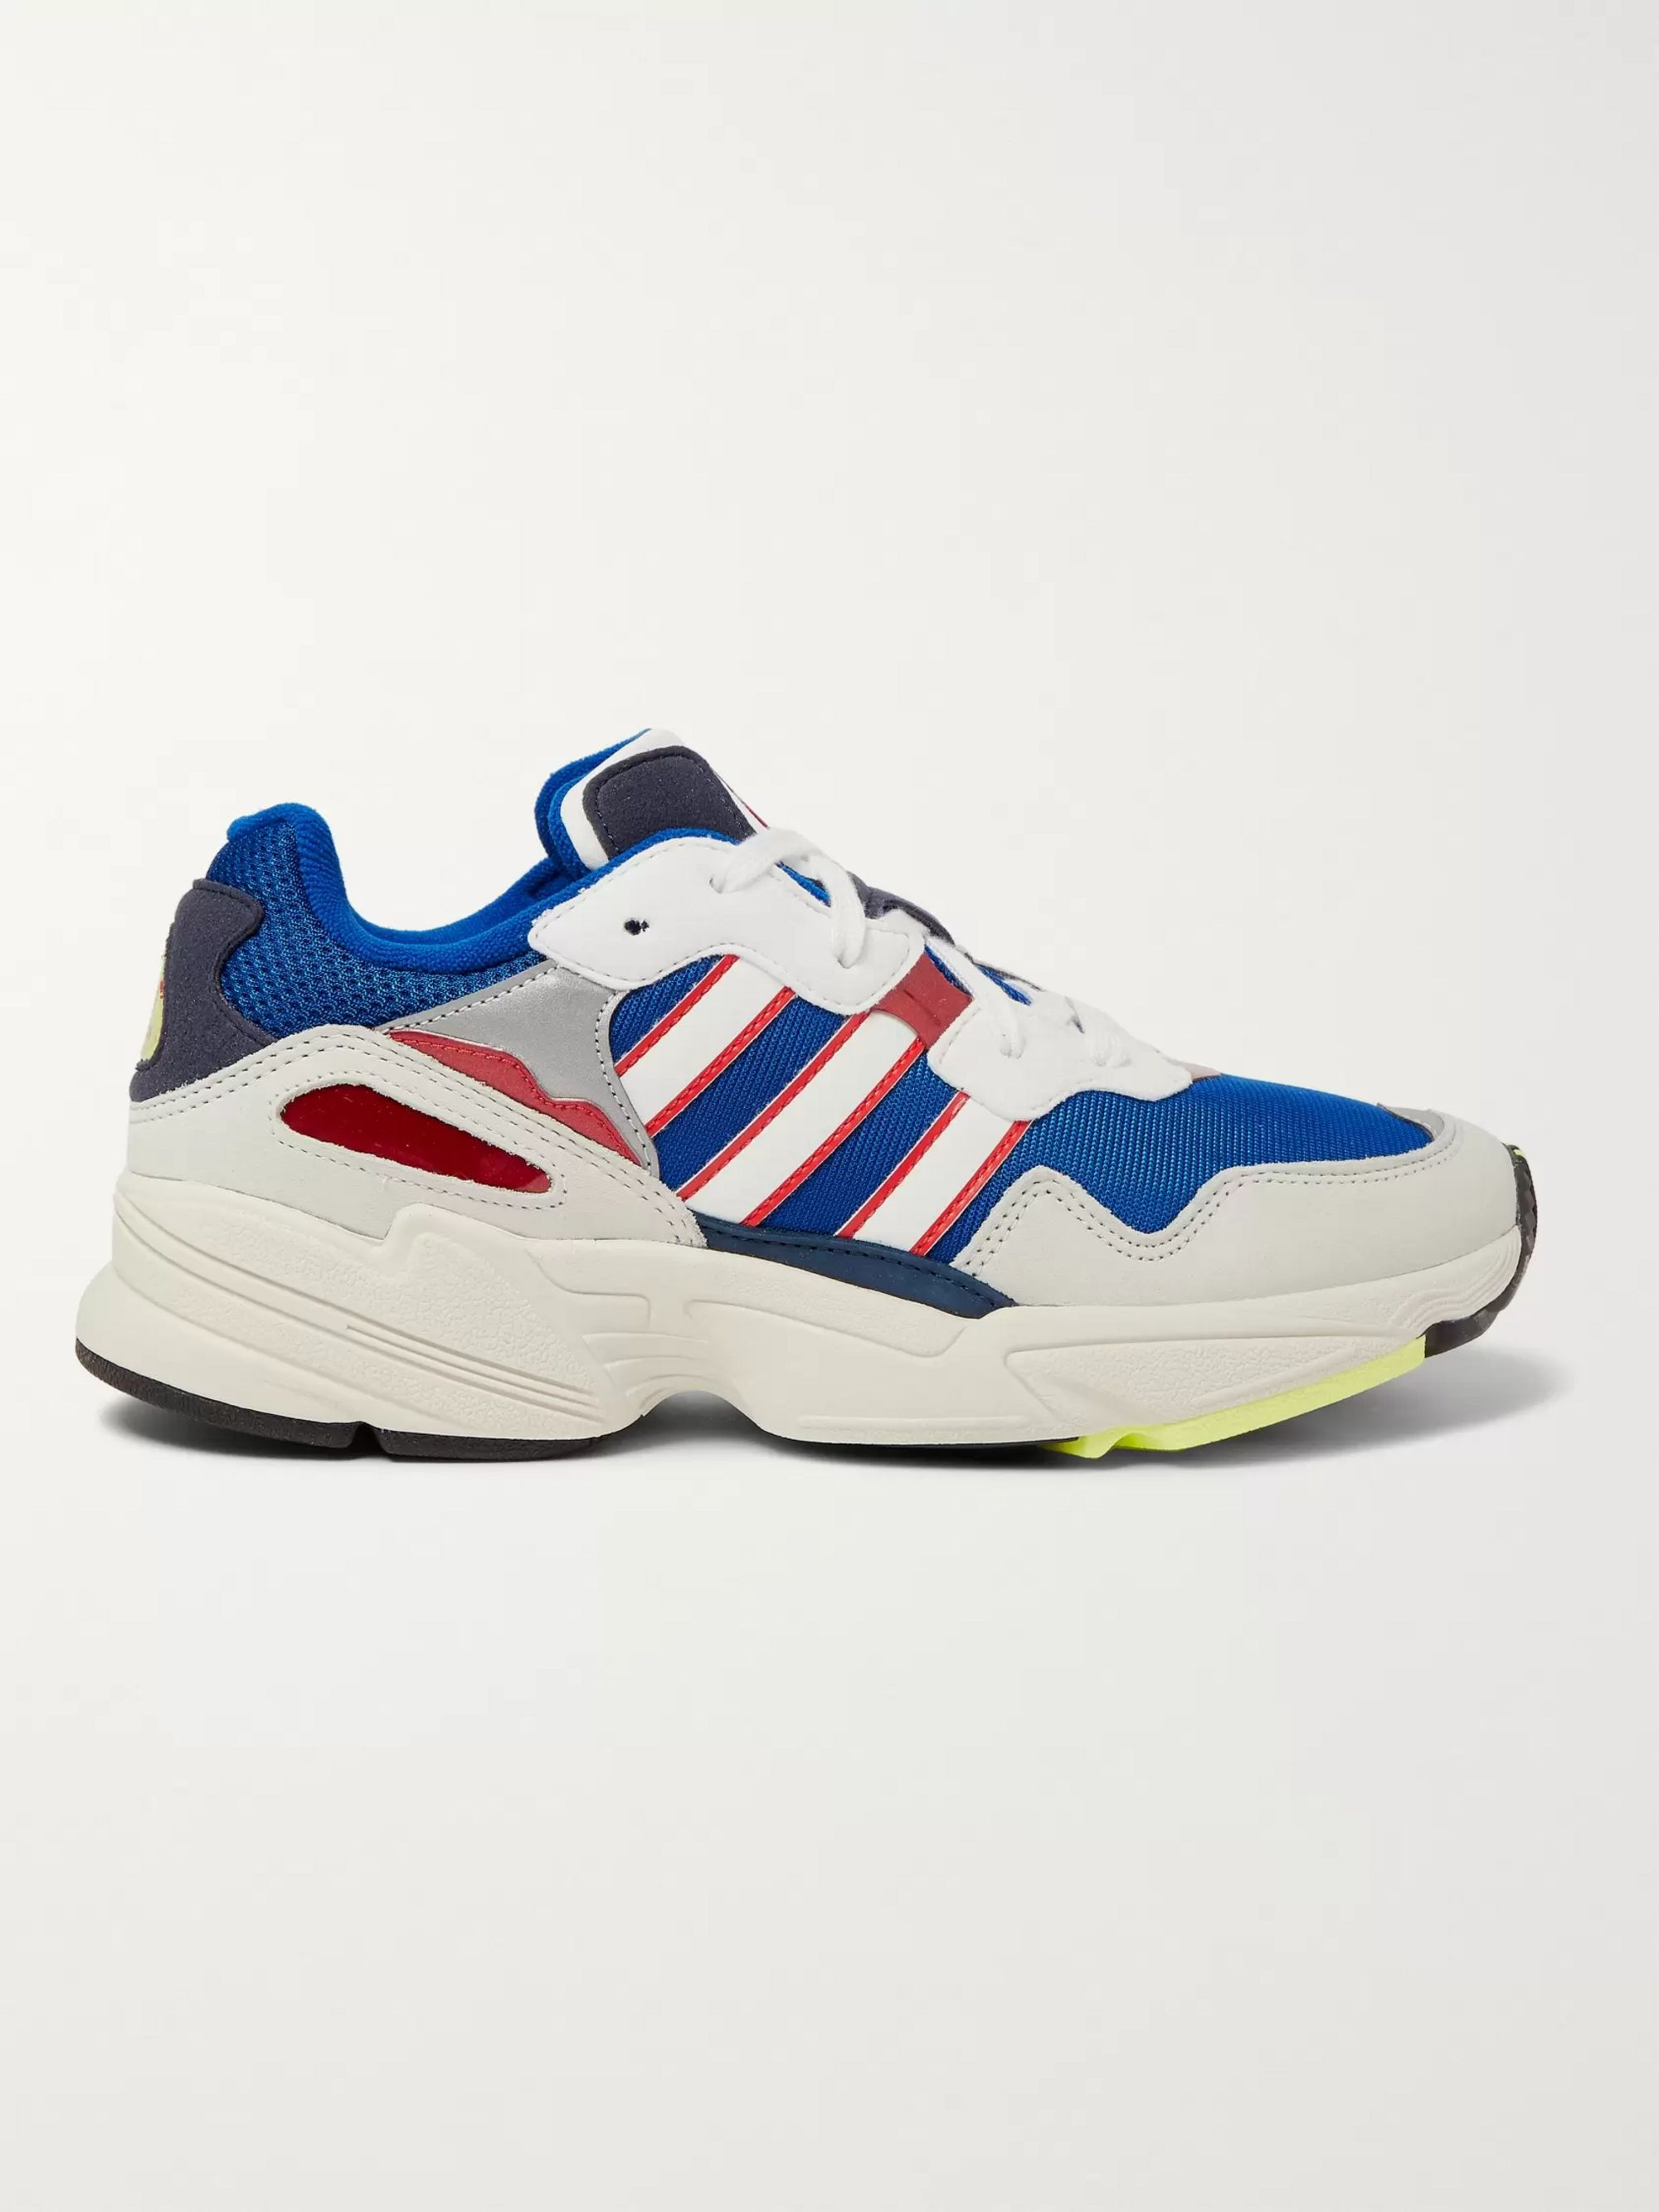 adidas Originals Yung 96 Suede, Leather and Mesh Sneakers